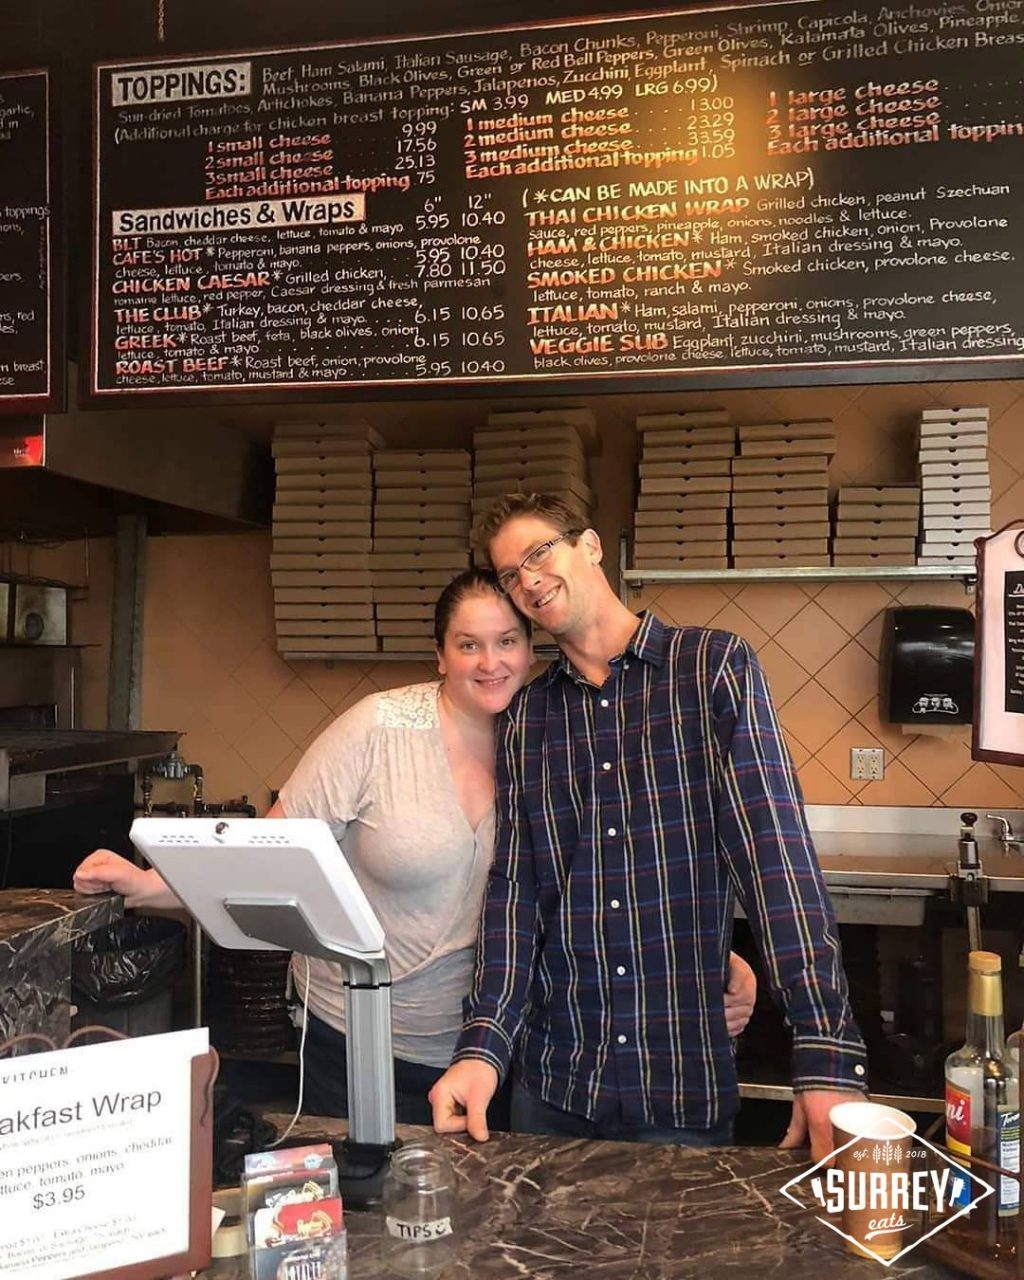 Ana and Neil, owners of Pepperoni Cafe behind the counter at their Surrey restaurant